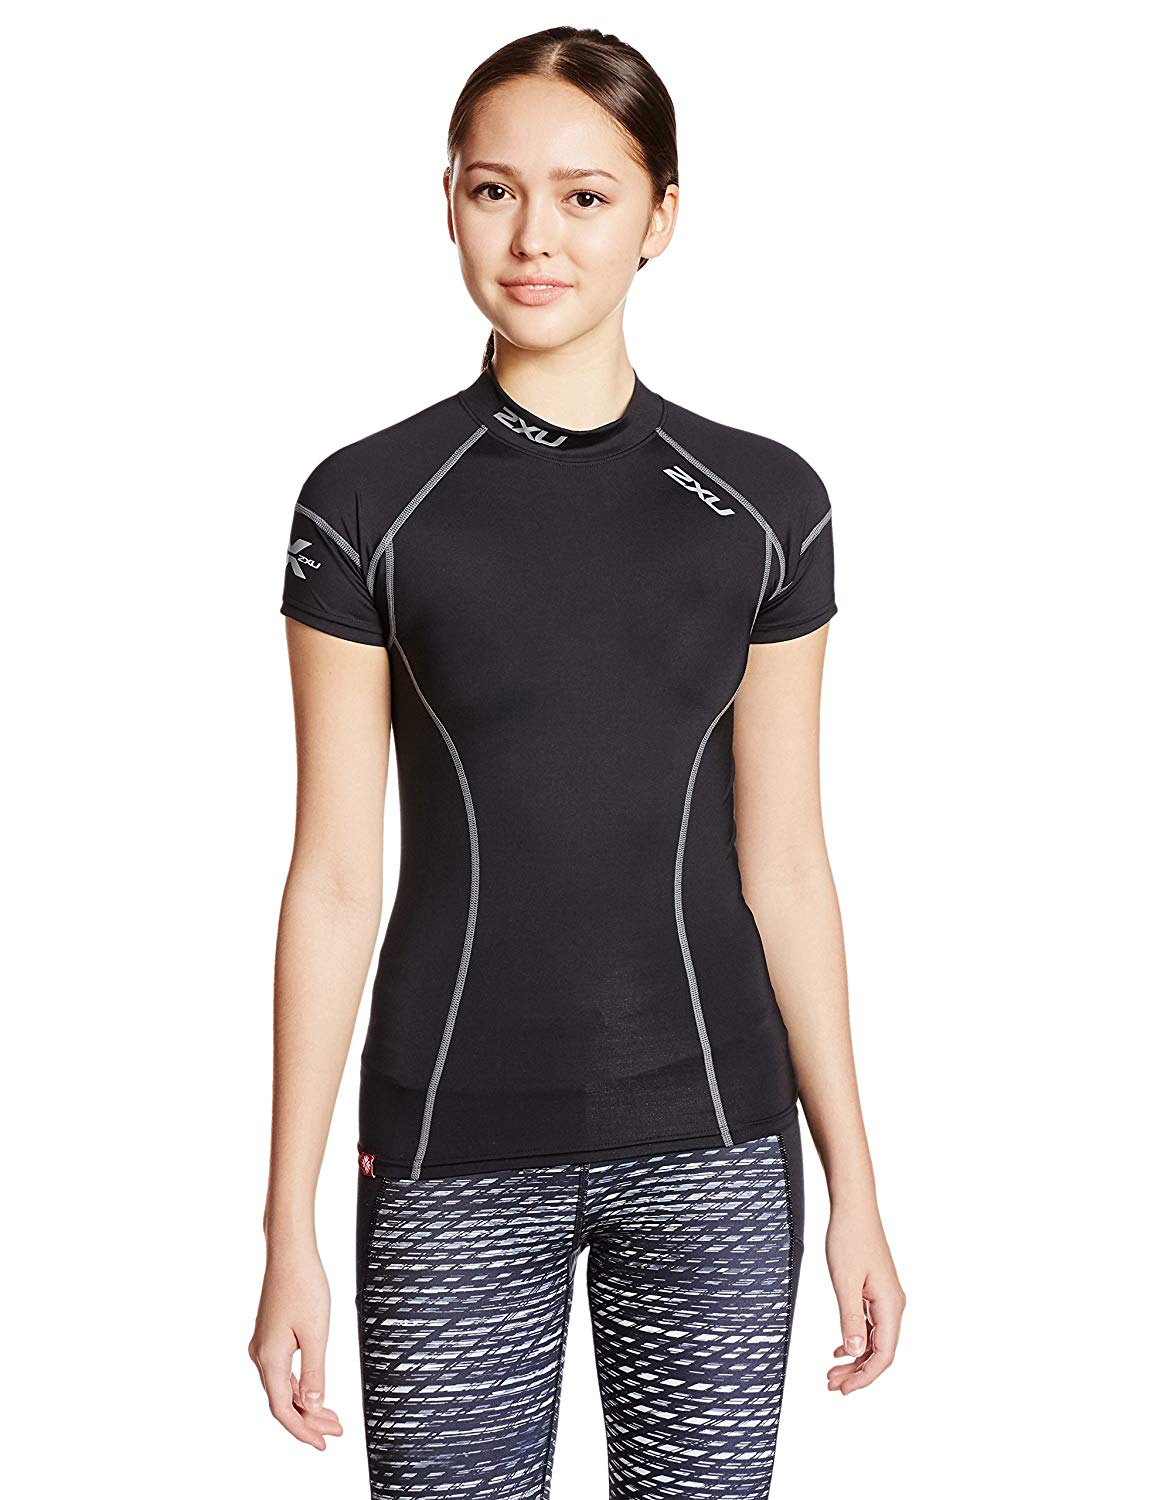 2XU Women's Elite Compression Short Sleeve Top